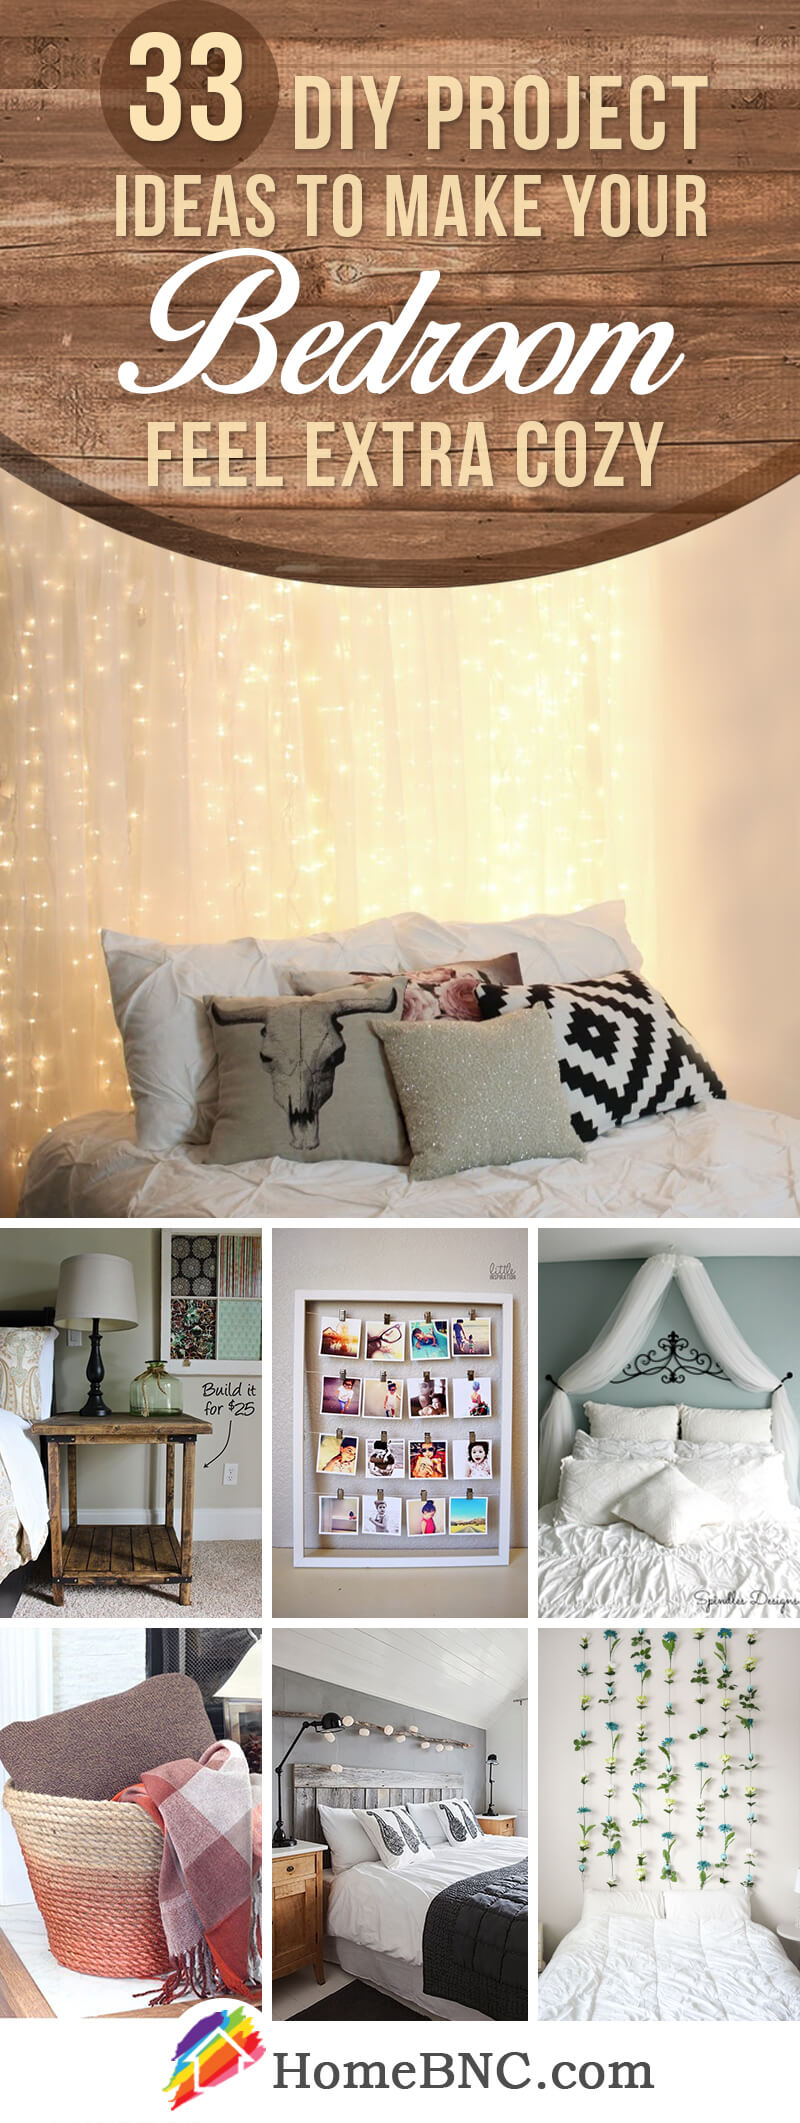 Cozy Bedroom Ideas 33 Best Diy Cozy Bedroom Project Ideas And Designs For 2019